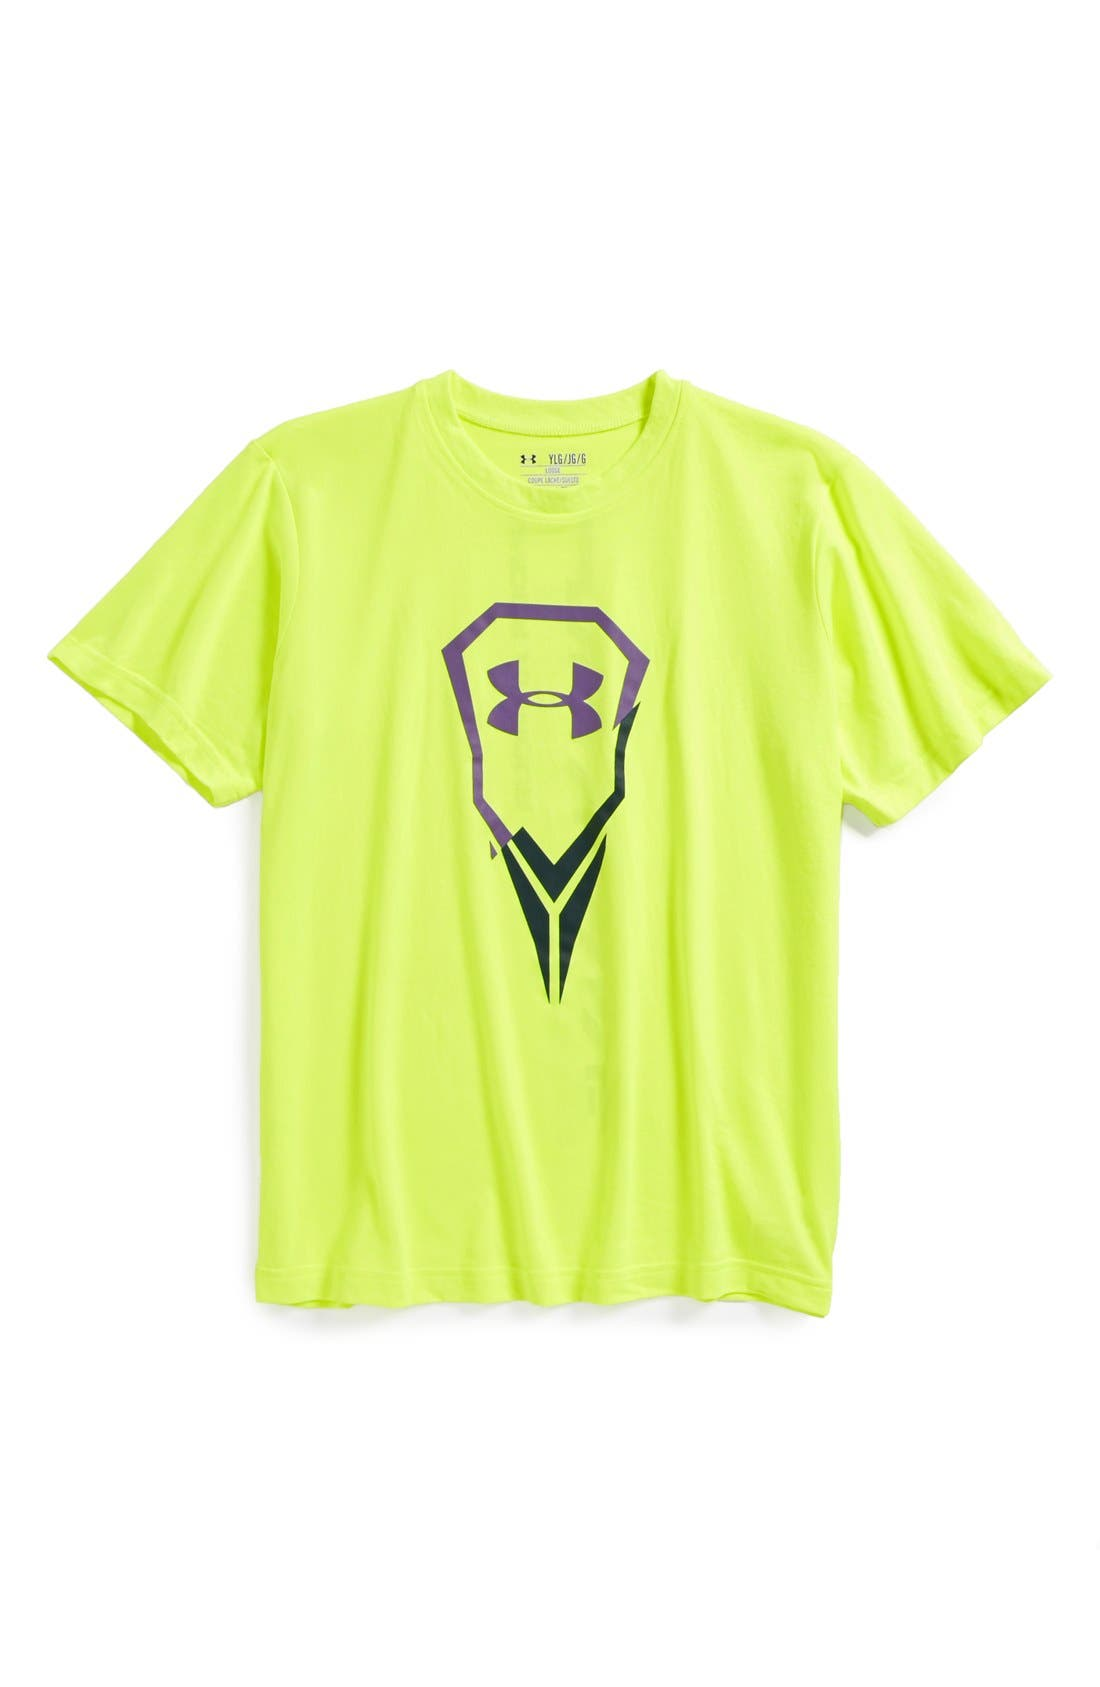 Alternate Image 1 Selected - Under Armour 'Ripped LAX Icon' HeatGear® T-Shirt (Big Boys)